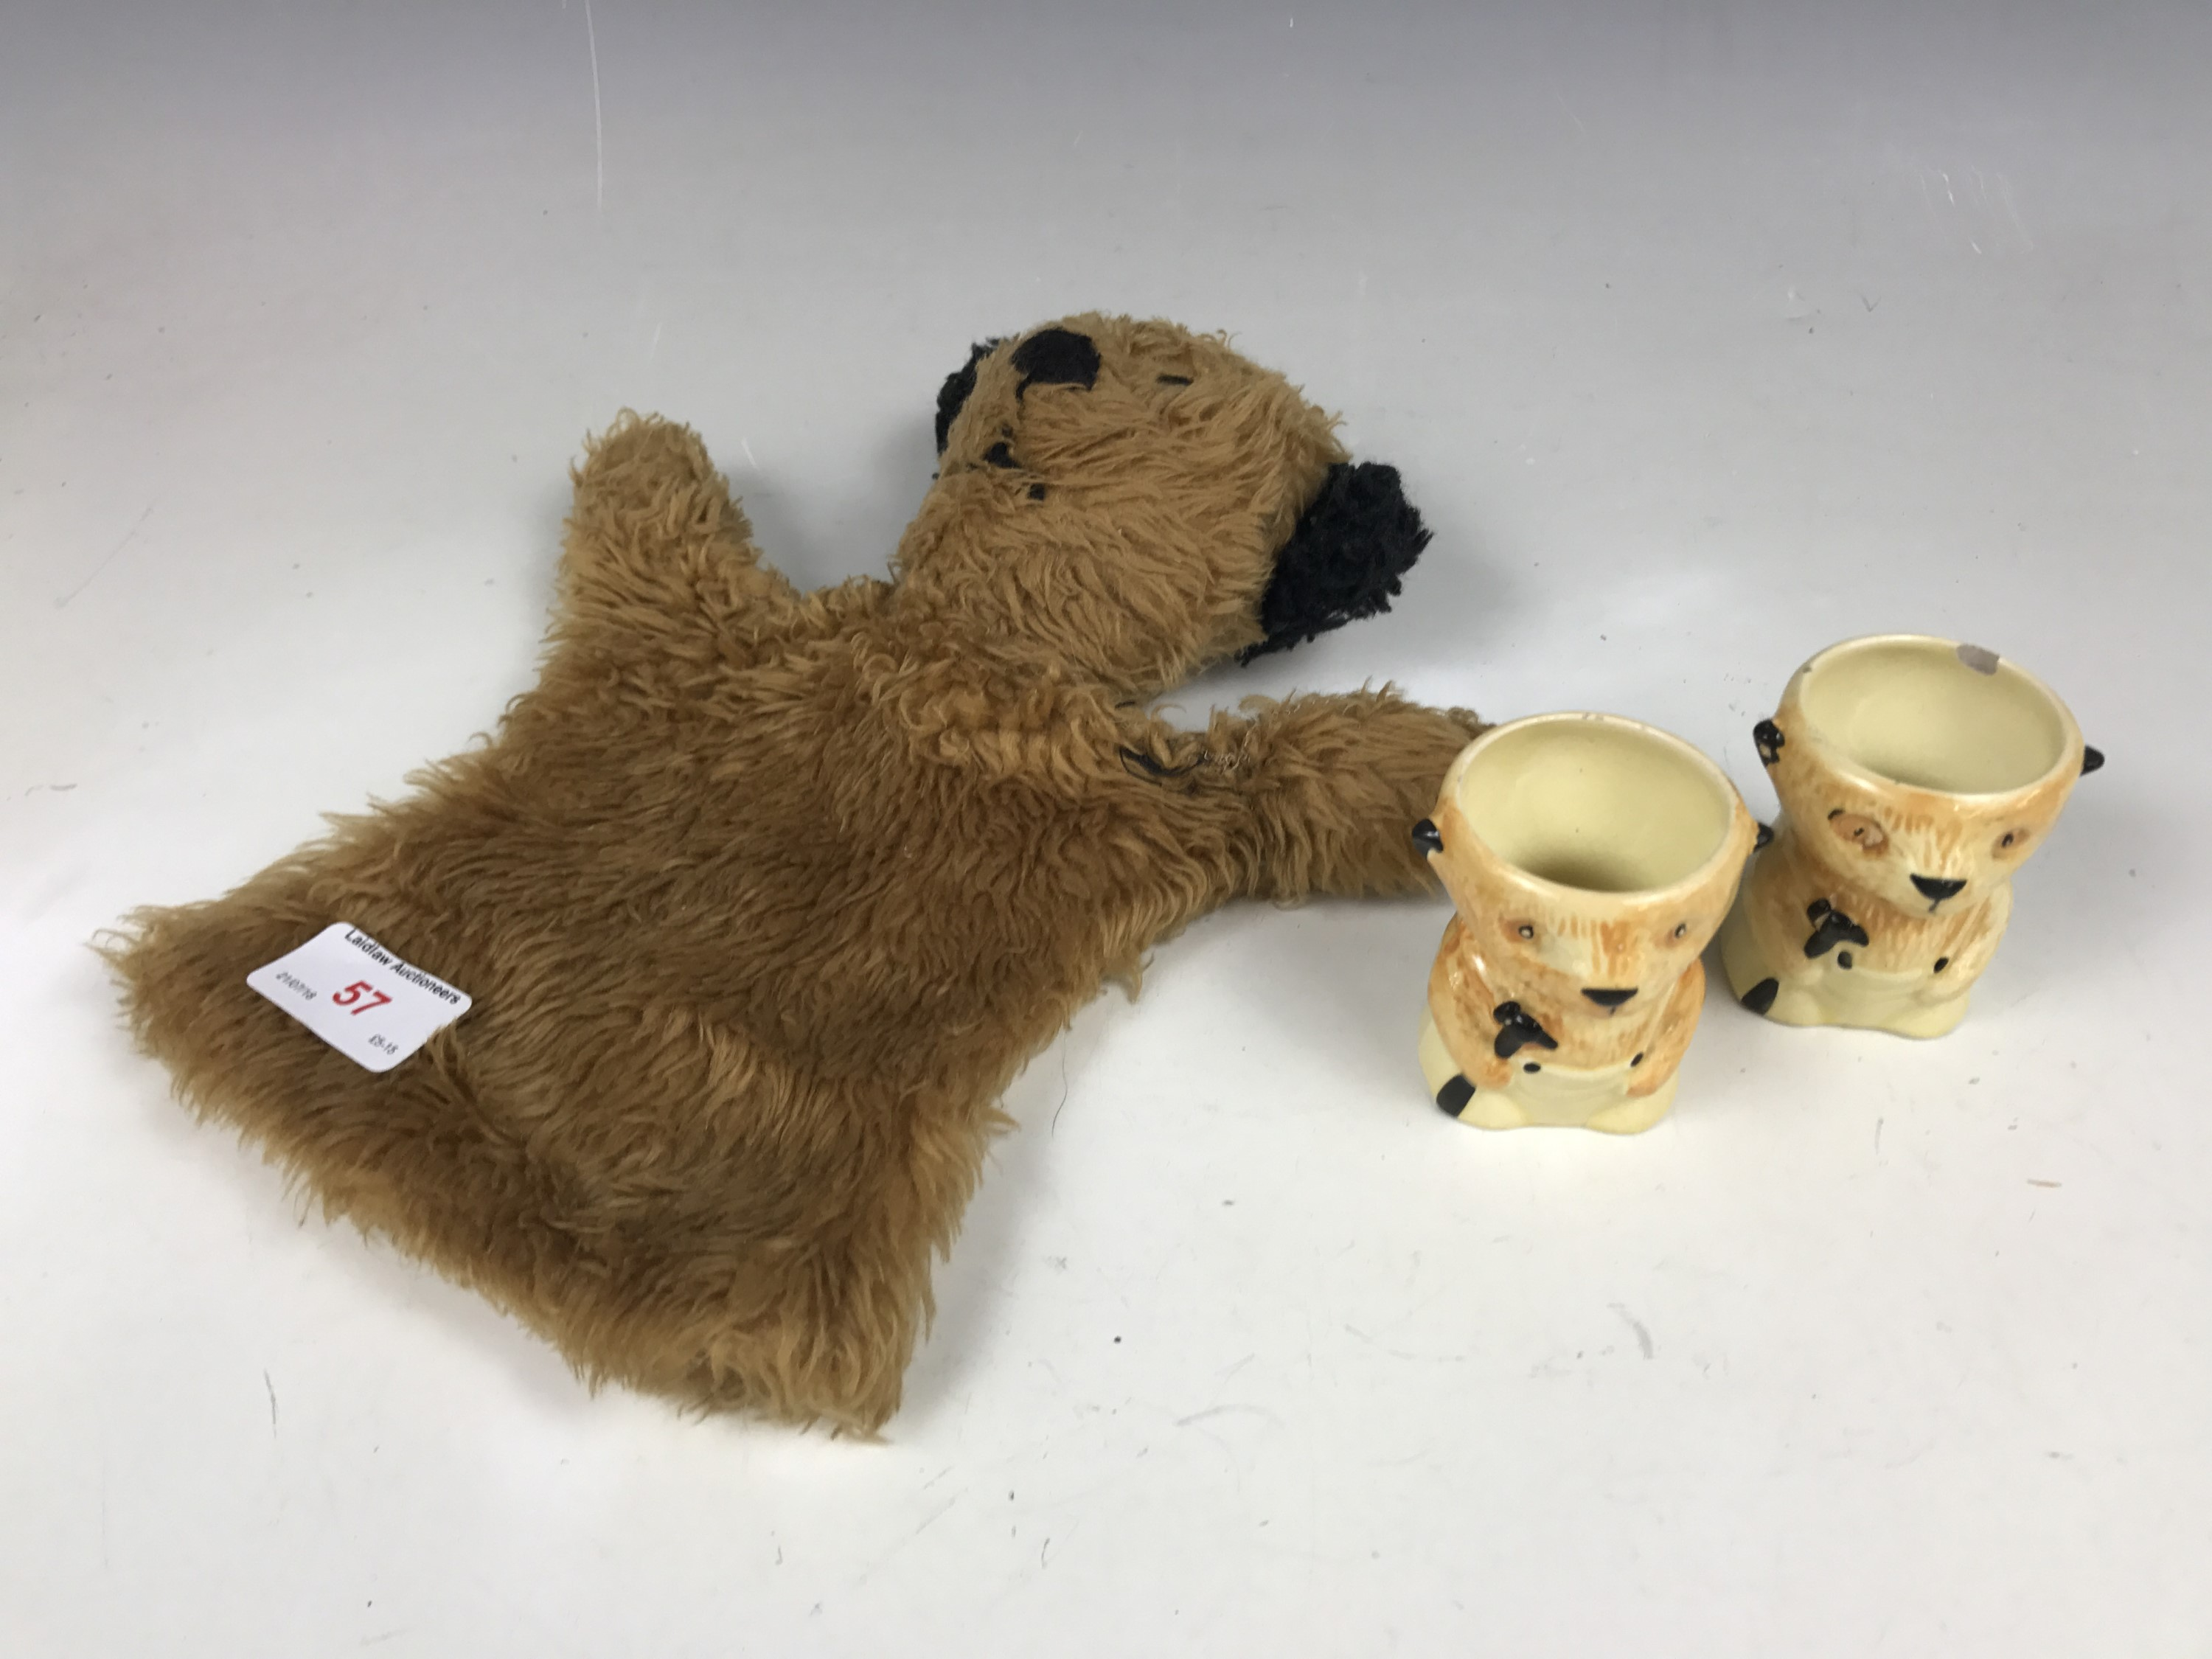 Lot 57 - A 1960s 'Sooty' glove puppet together with two Keele Street pottery egg cups